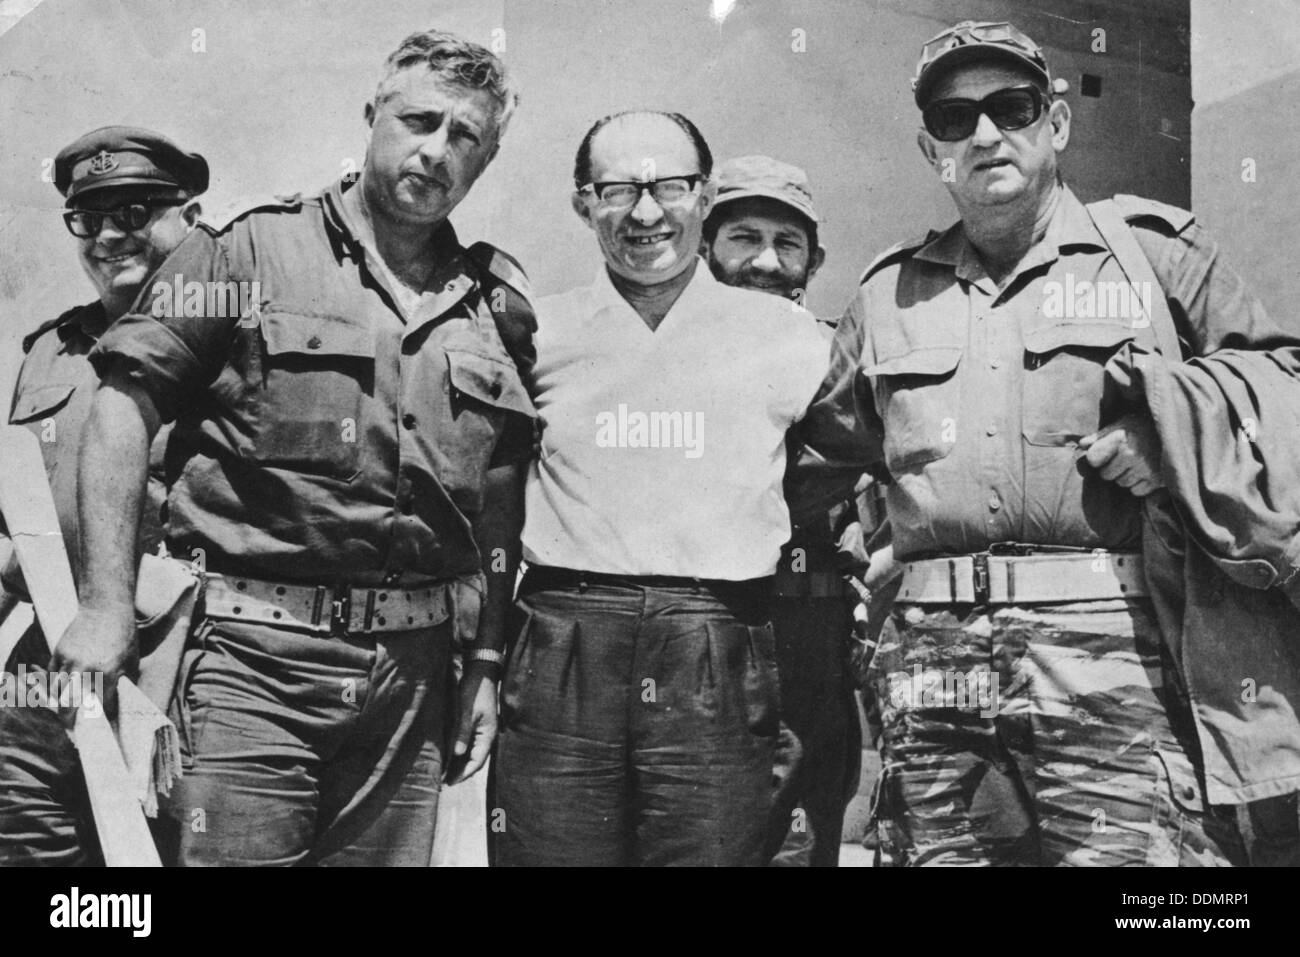 Menachem Begin (1913-1992), 6th Prime Minister of Israel, during the Six Day War, 1967. - Stock Image